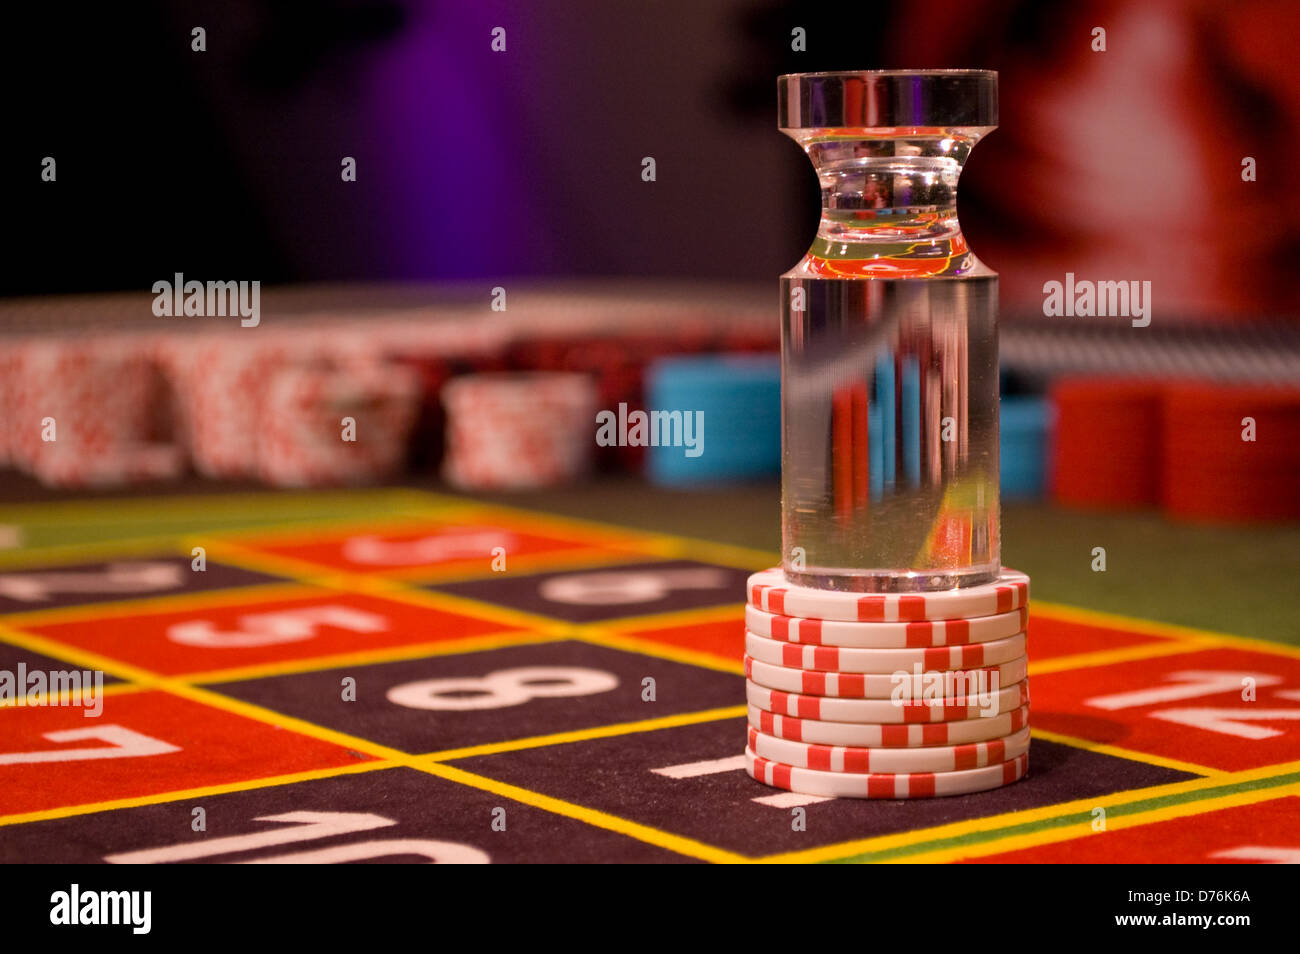 Roulette system of a down traducida